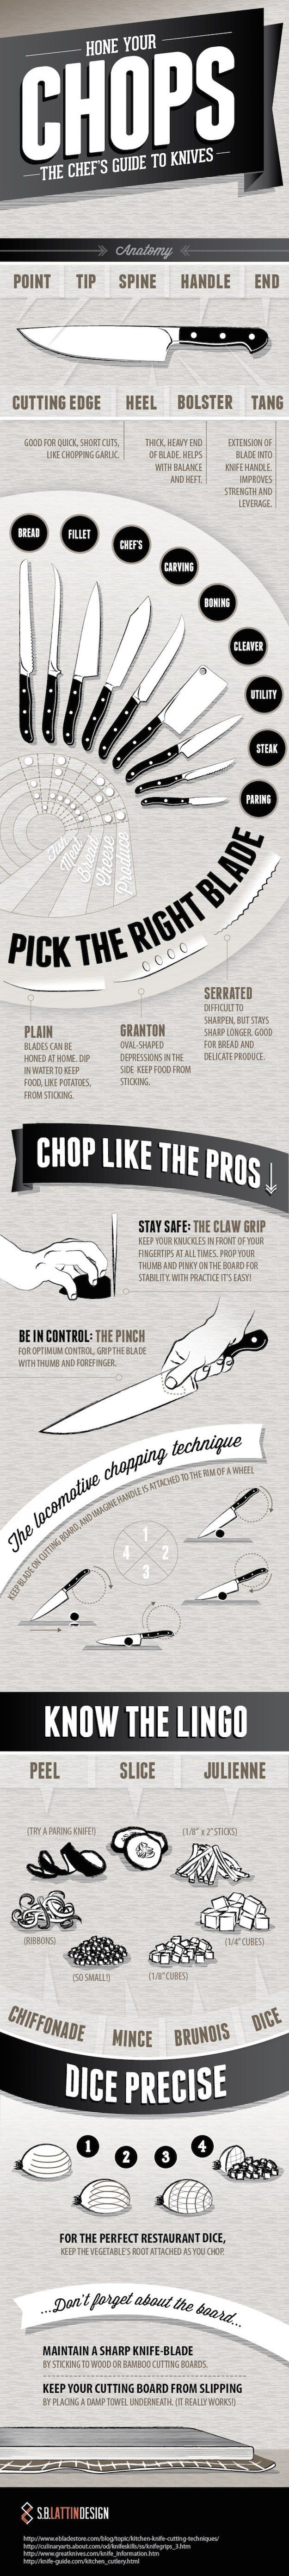 For knife skills. | 27 Diagrams That Will Make You A Better Cook